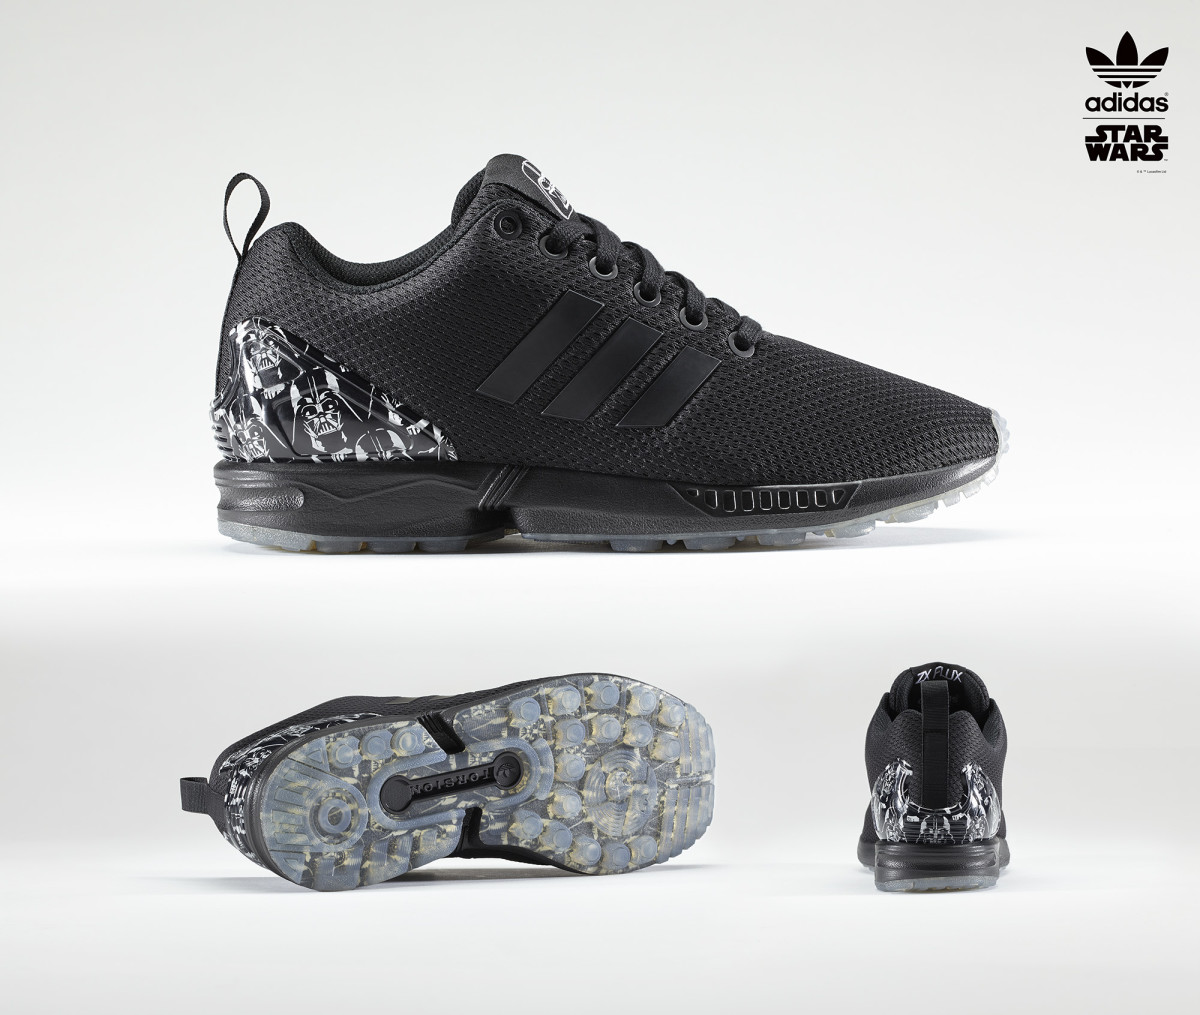 mi-adidas-adds-new-star-wars-options-for-zx-flux-06